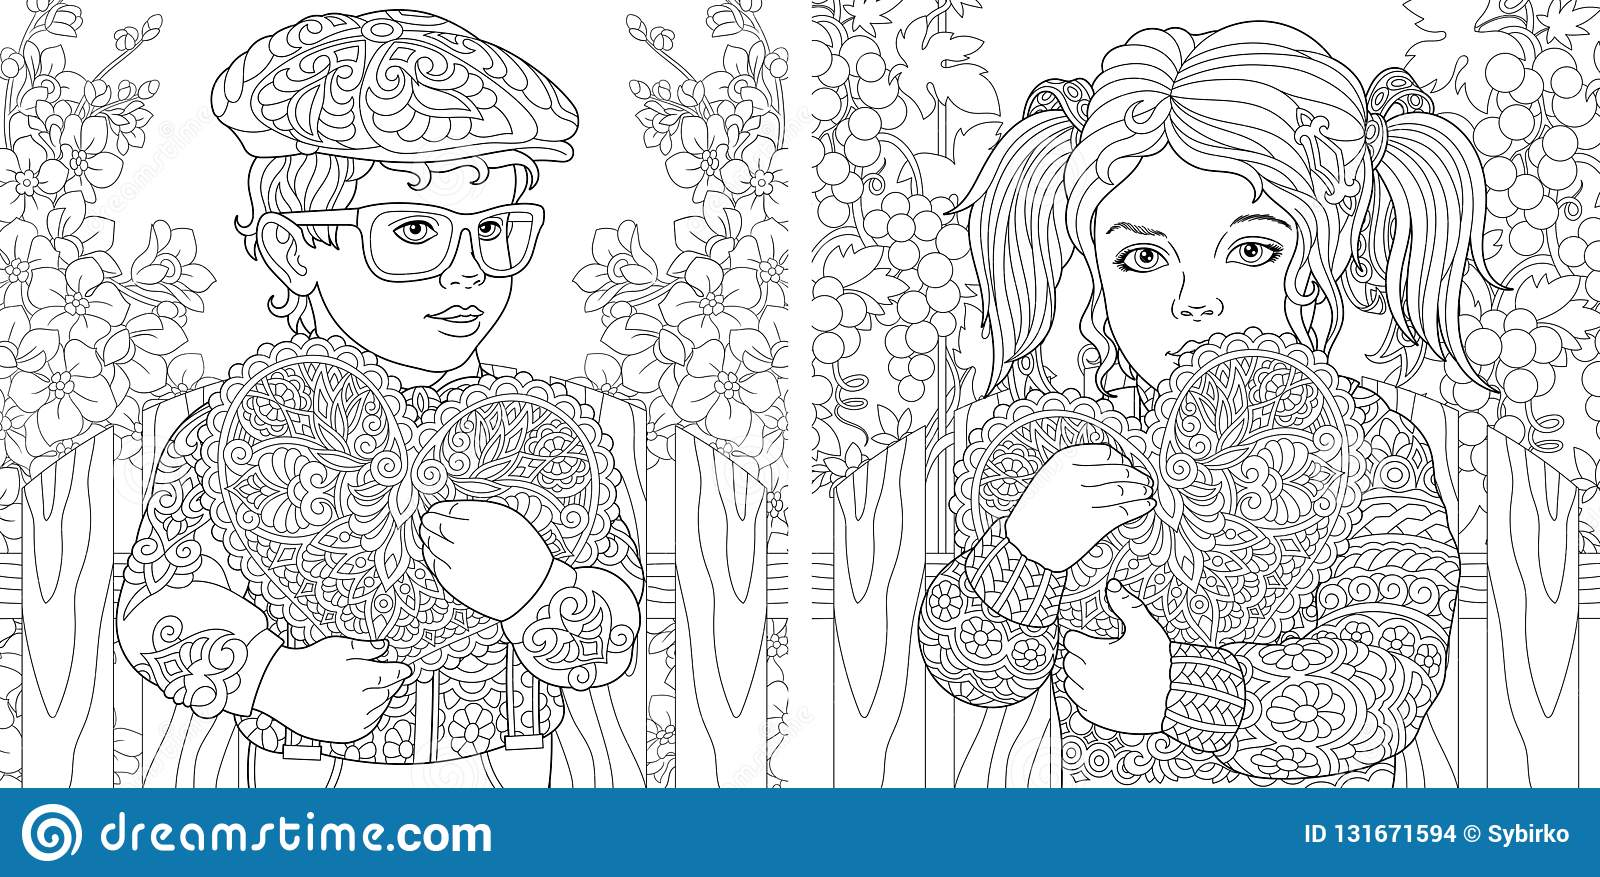 7 Free Printable Valentine's Day Coloring Pages | Parents | 877x1600